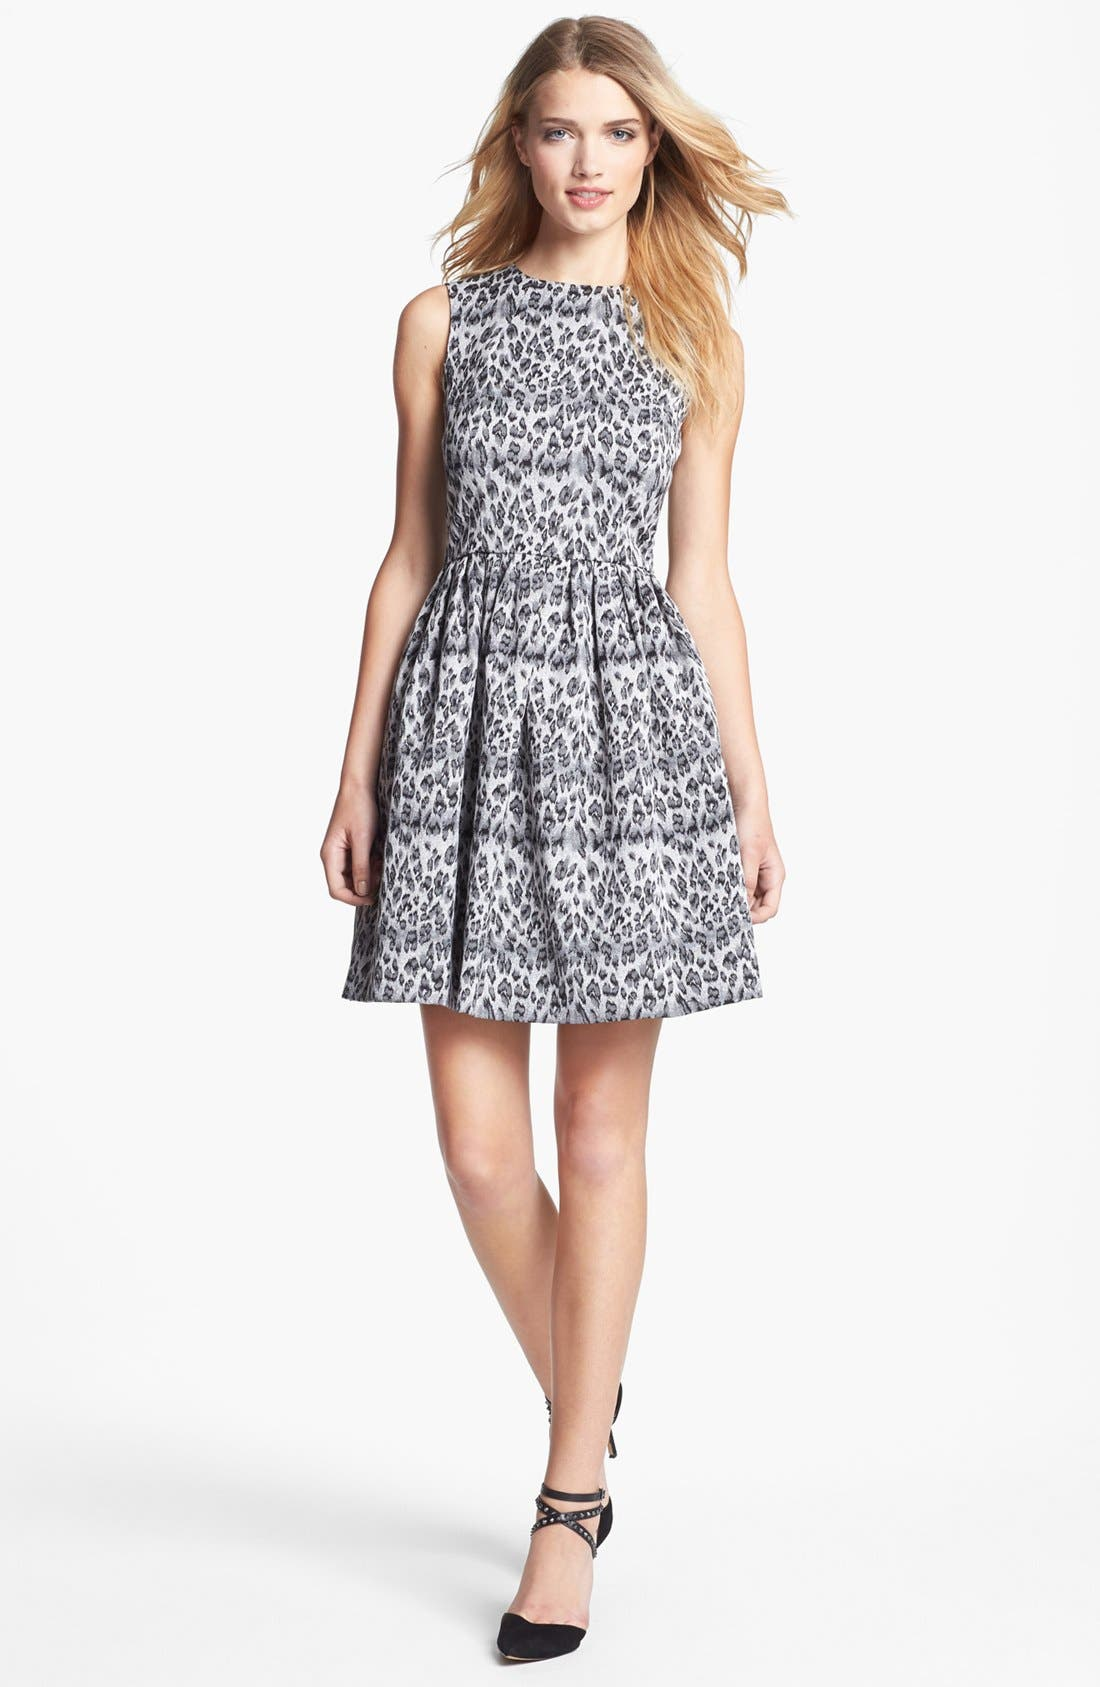 Main Image - Taylor Dresses Sleeveless Jacquard Fit & Flare Dress (Regular & Petite)